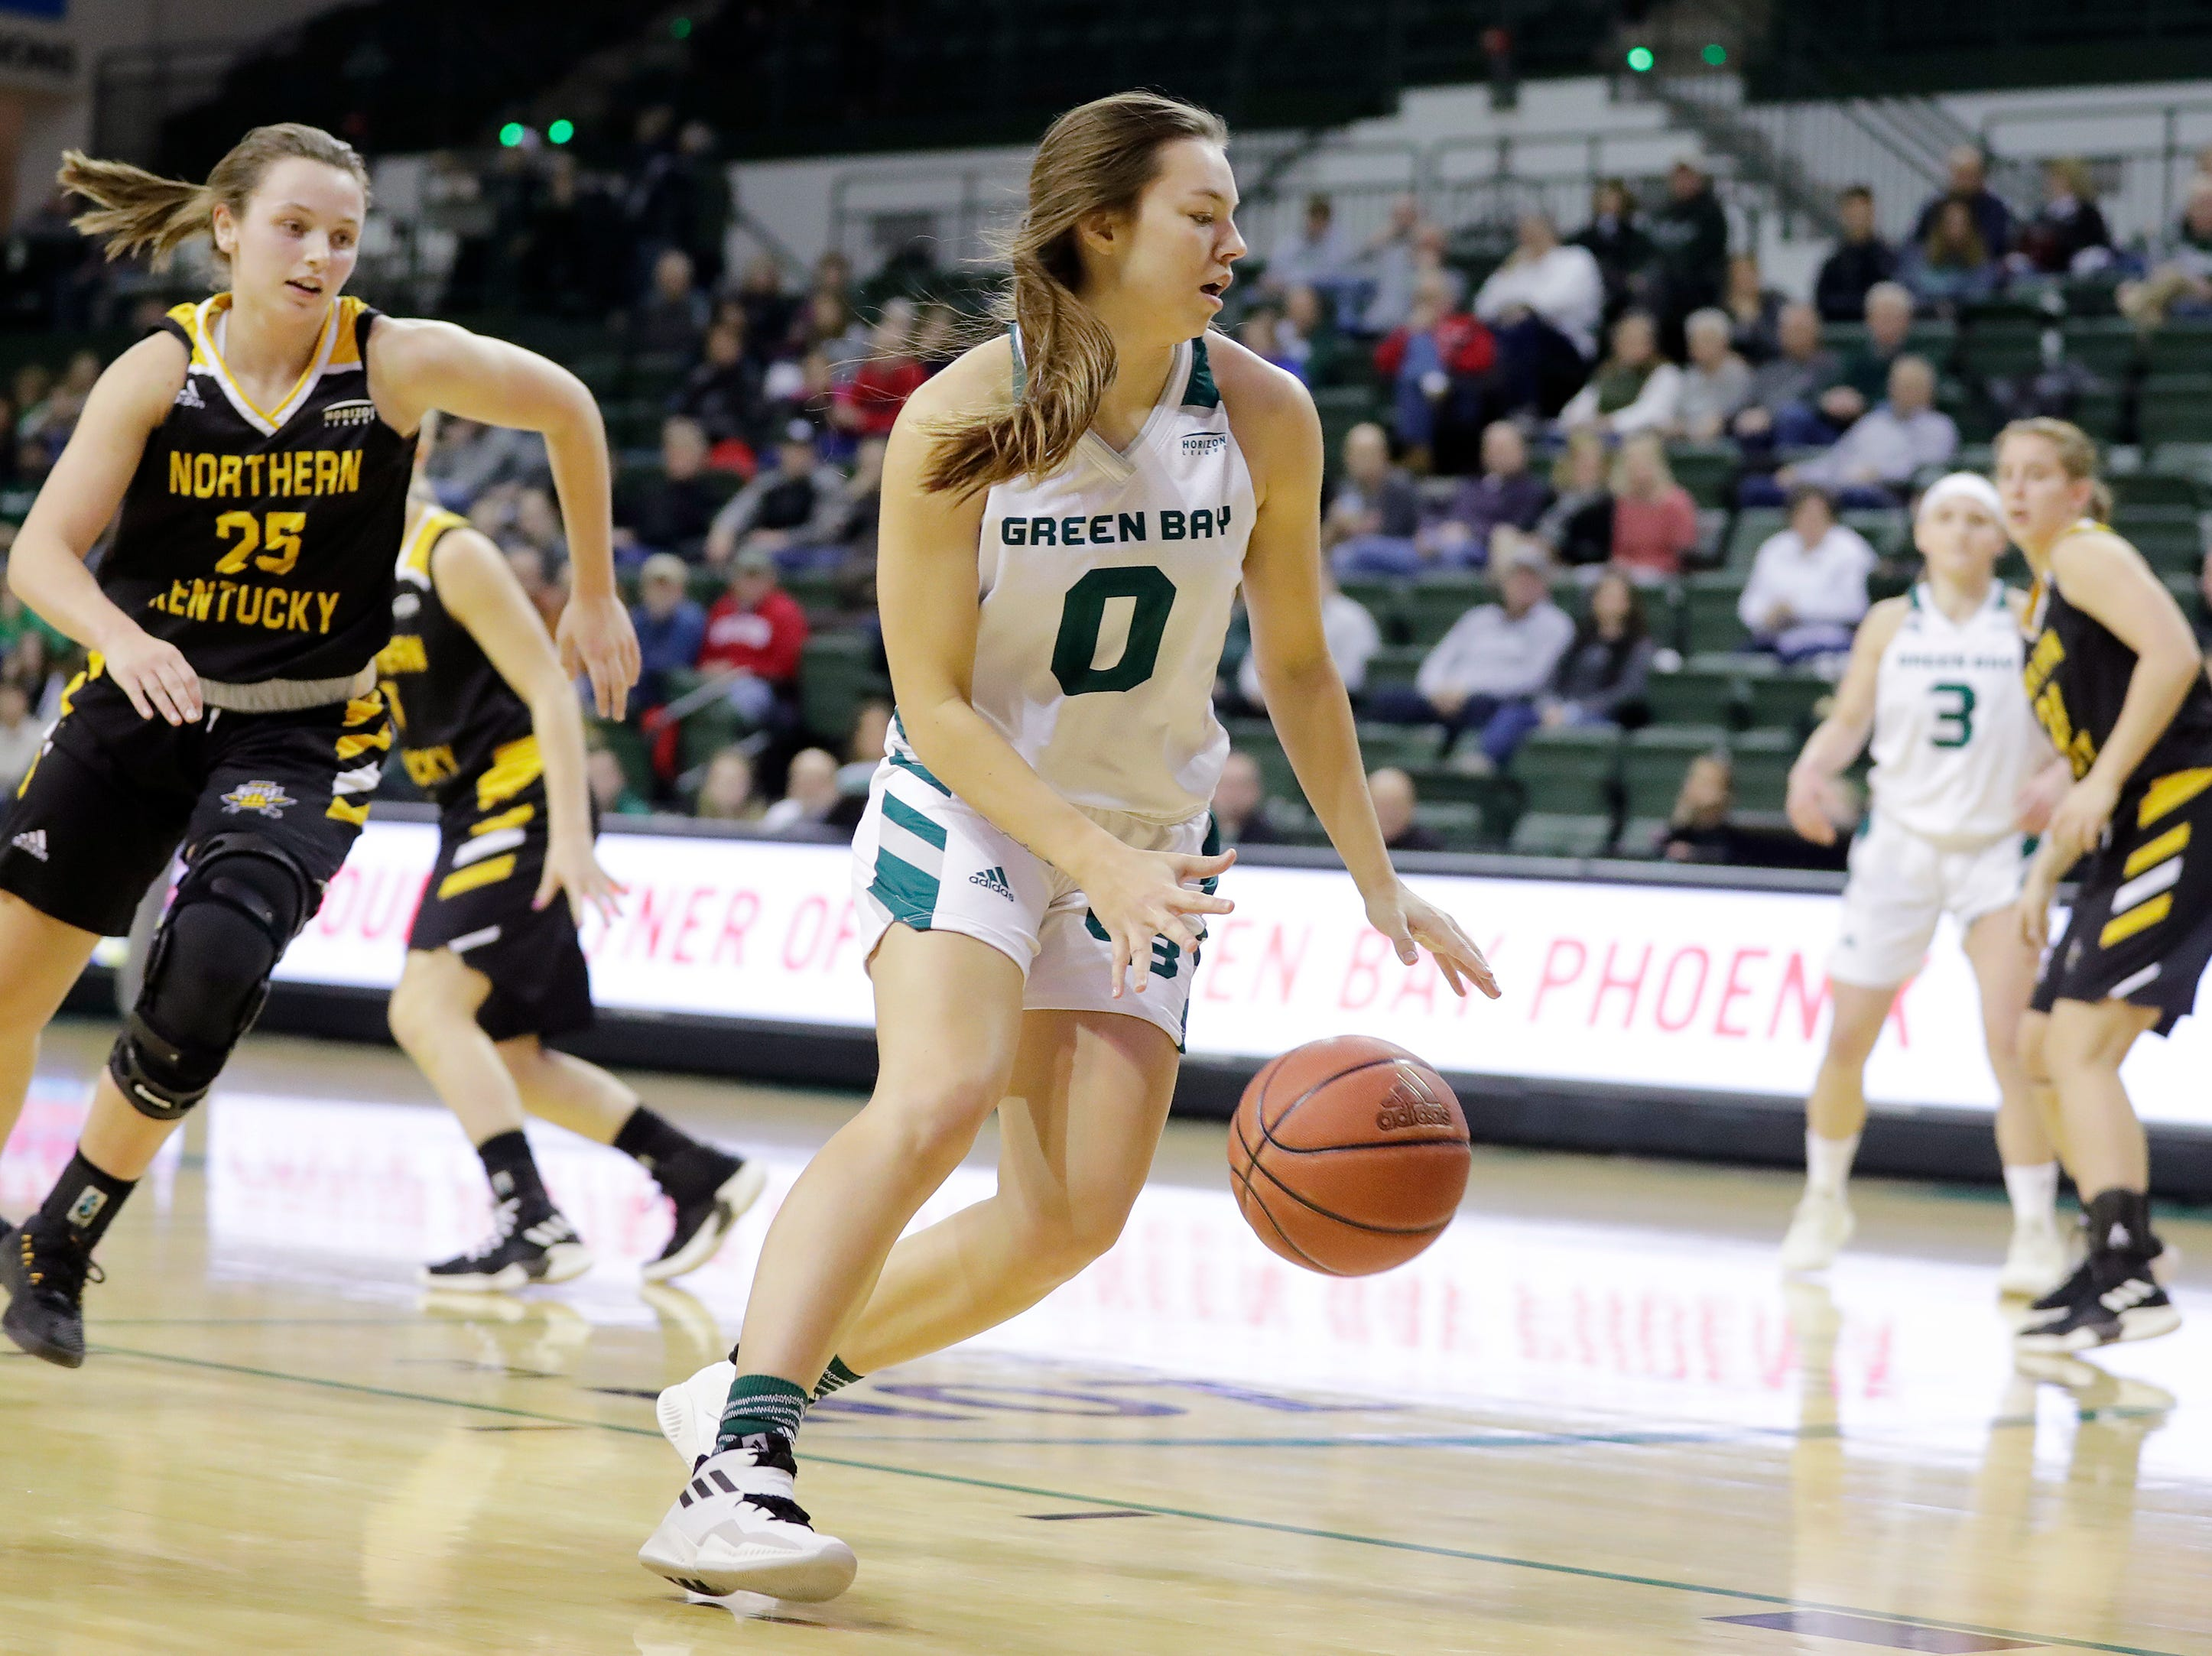 Green Bay Phoenix guard Hailey Oskey (0) dribbles against the Northern Kentucky Norse in a Horizon League women's basketball game at the Kress Center on Thursday, February 7, 2019 in Green Bay, Wis.